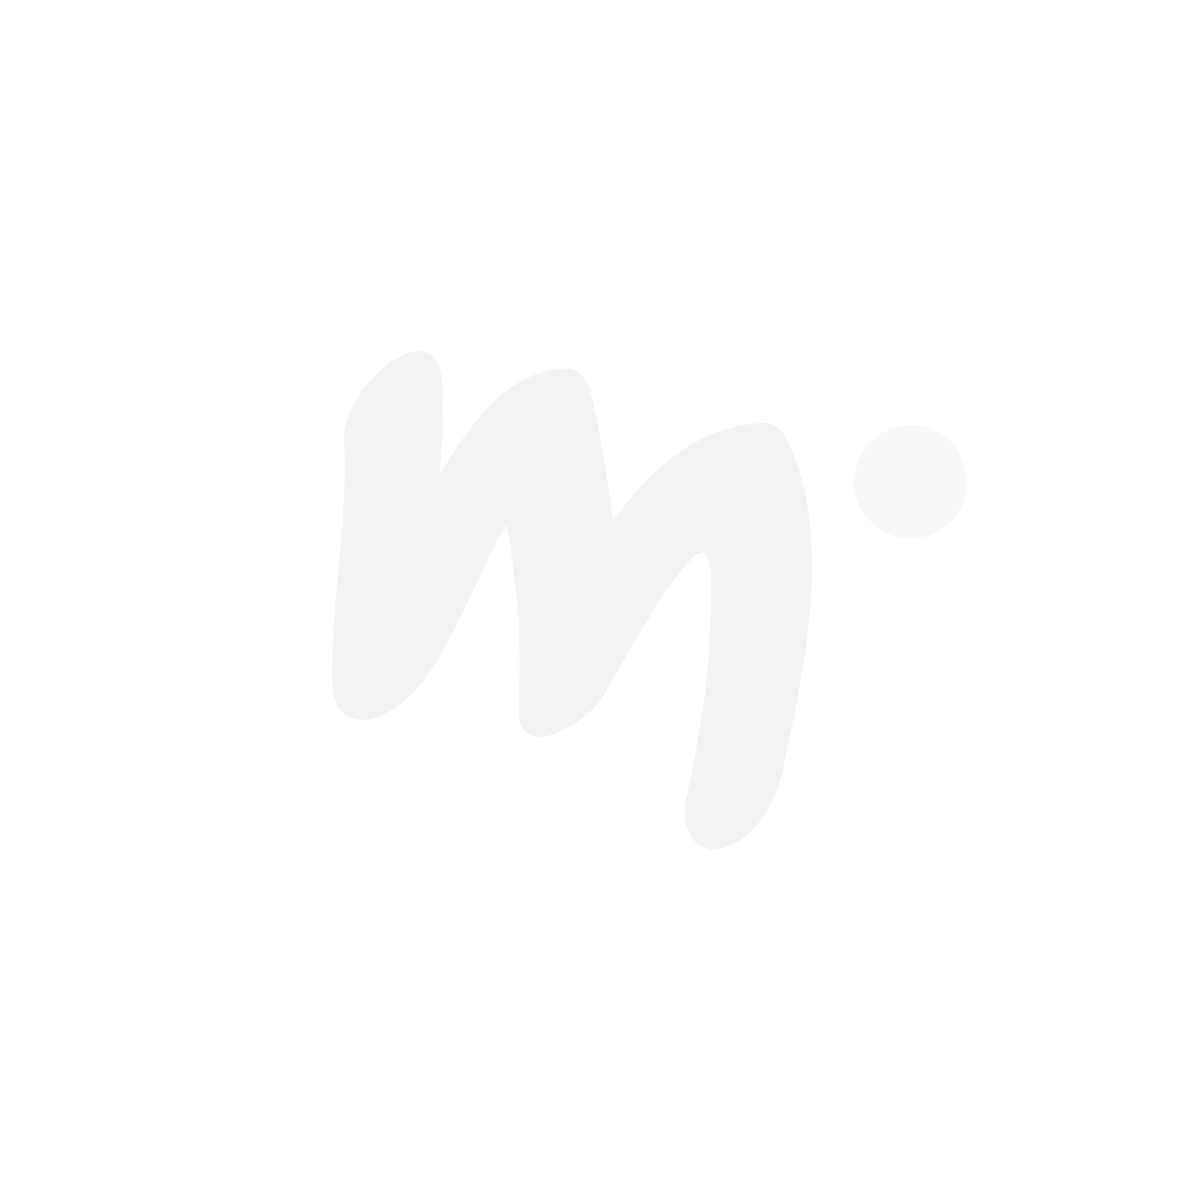 Moomin Seasons of Moominvalley Card Game